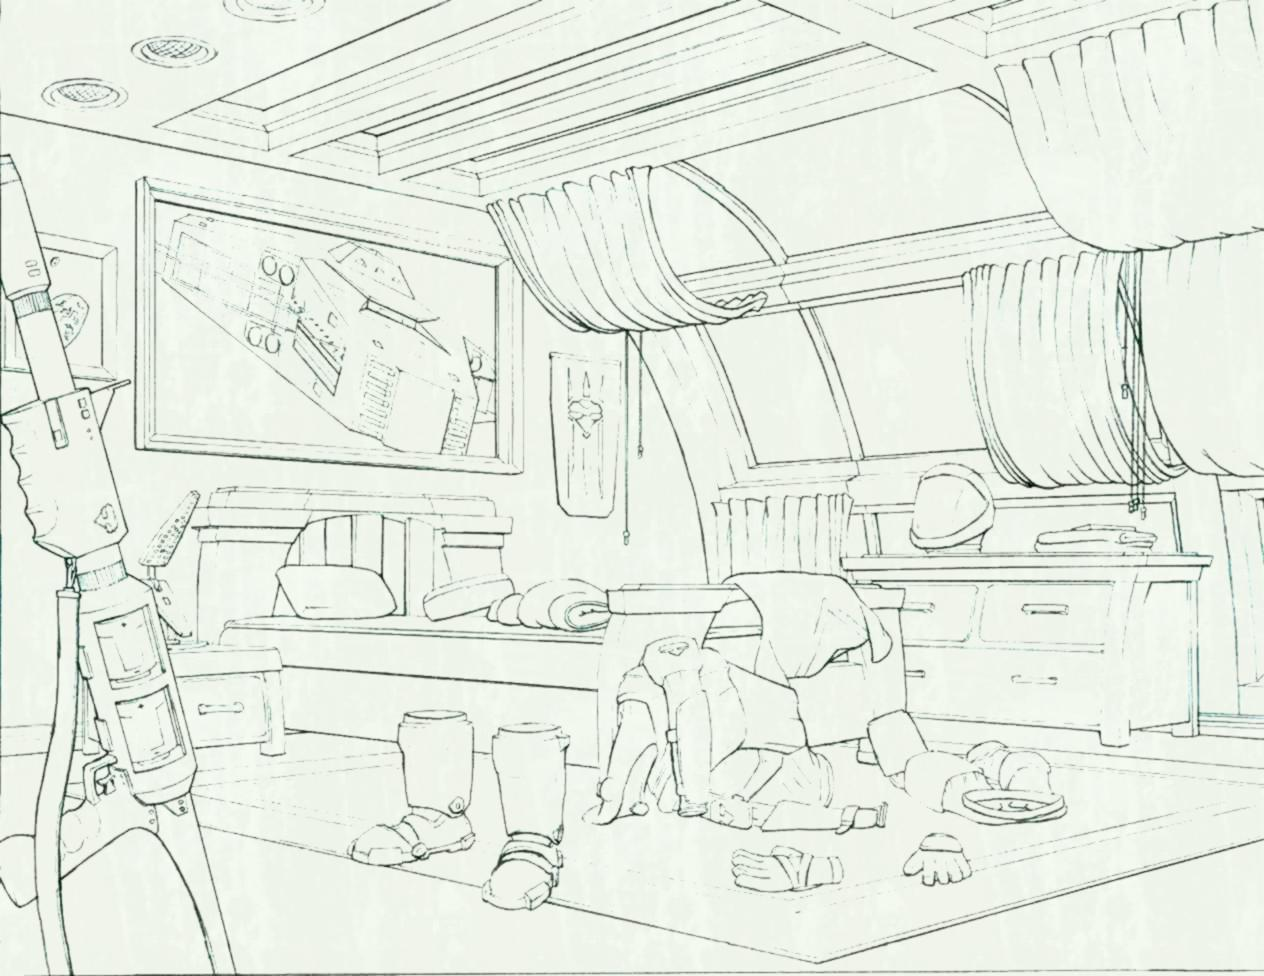 1264x976 Bedroom Drawing From My Perspective Imgur Wwuir